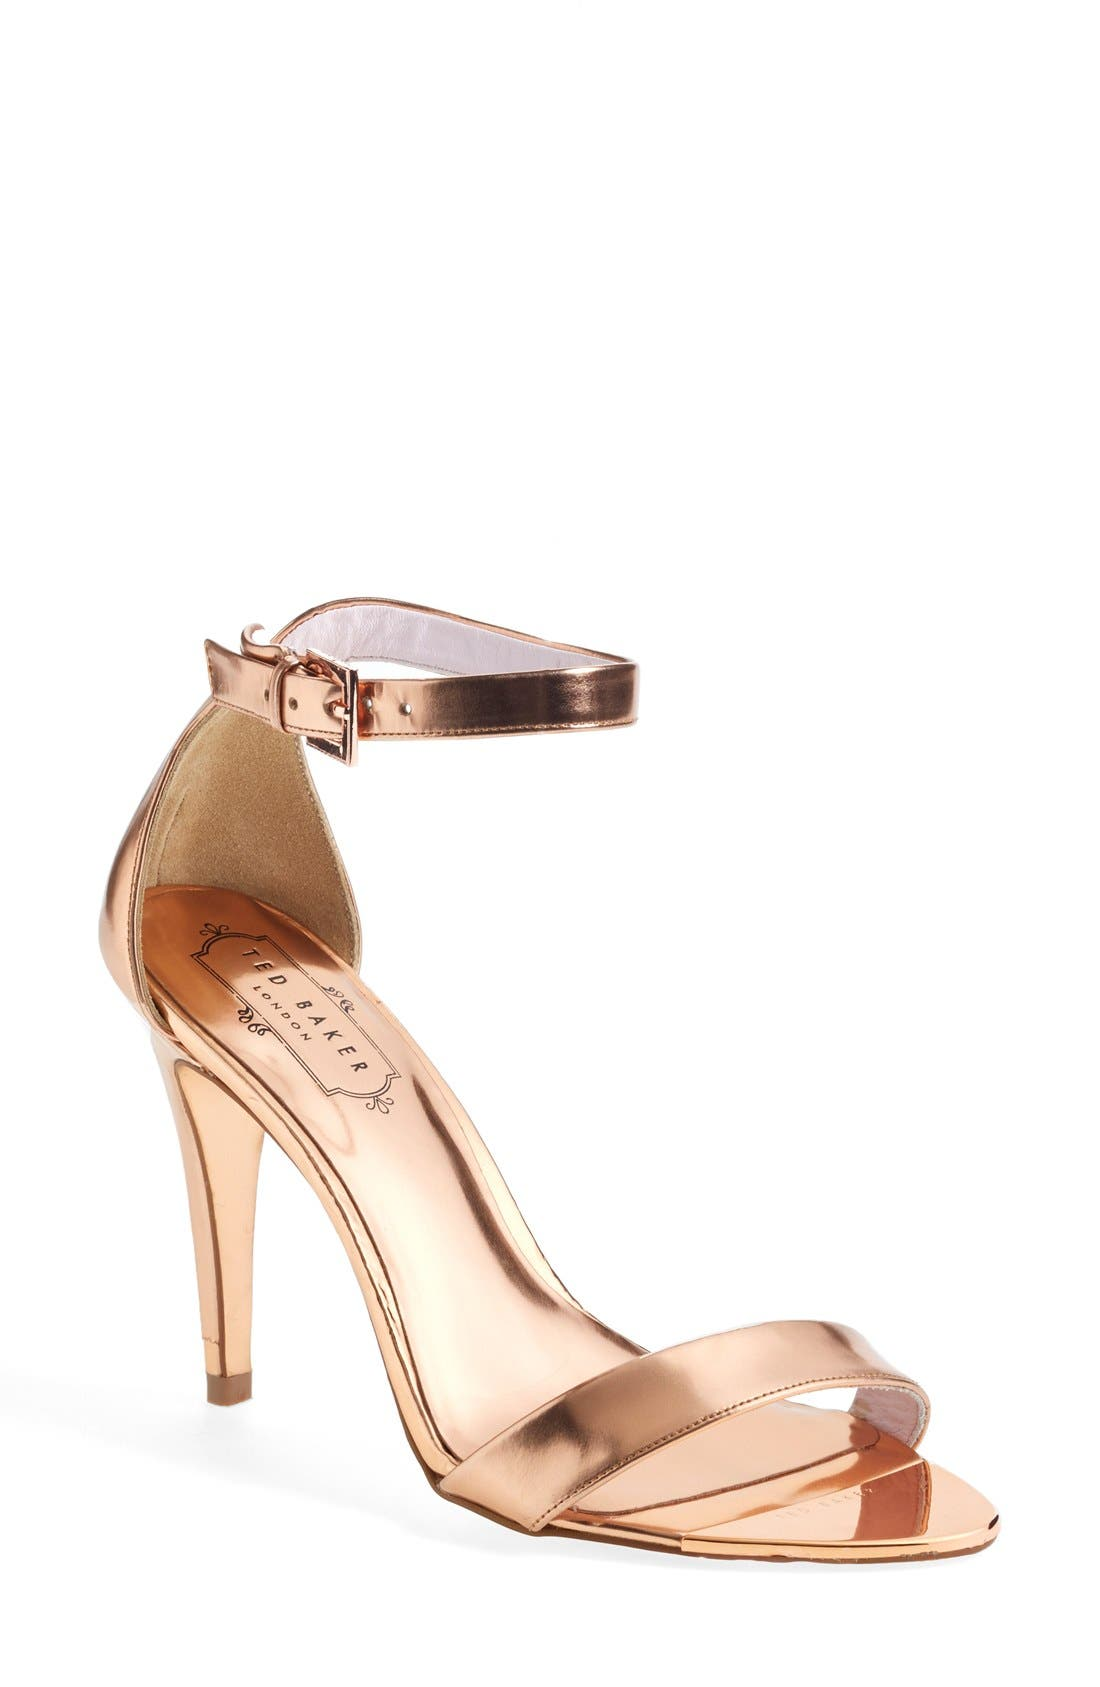 Main Image - Ted Baker London 'Juliennas' Leather Sandal (Women)